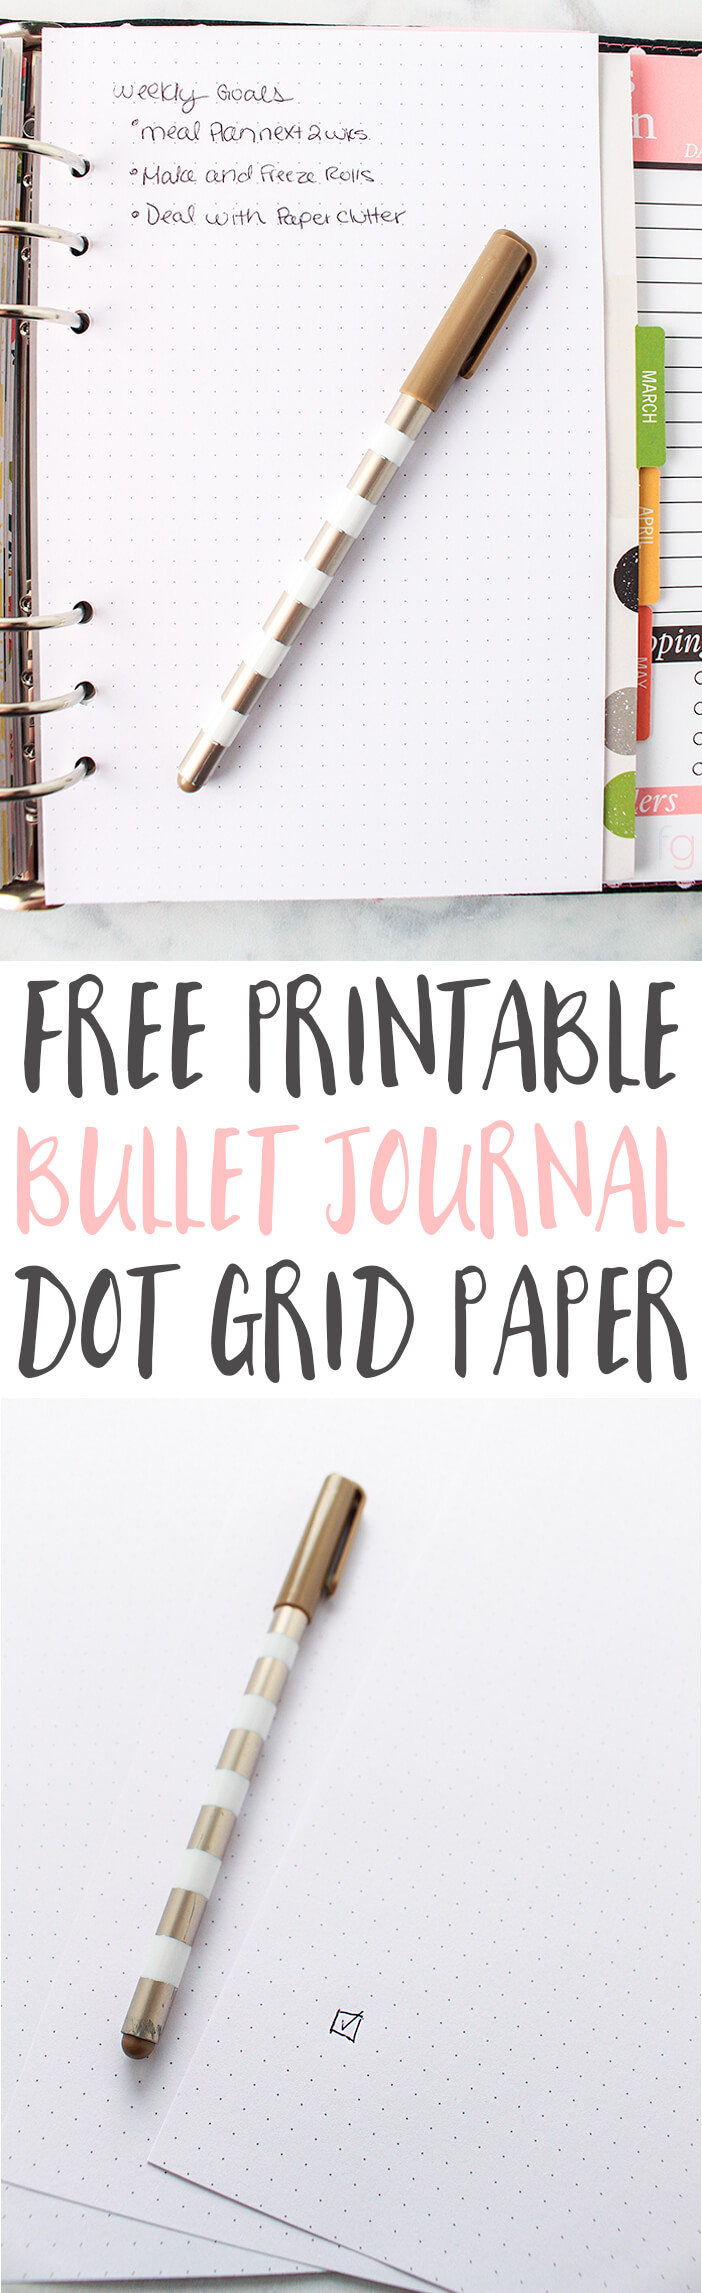 Dot Grid Paper Printable for Bullet Journaling